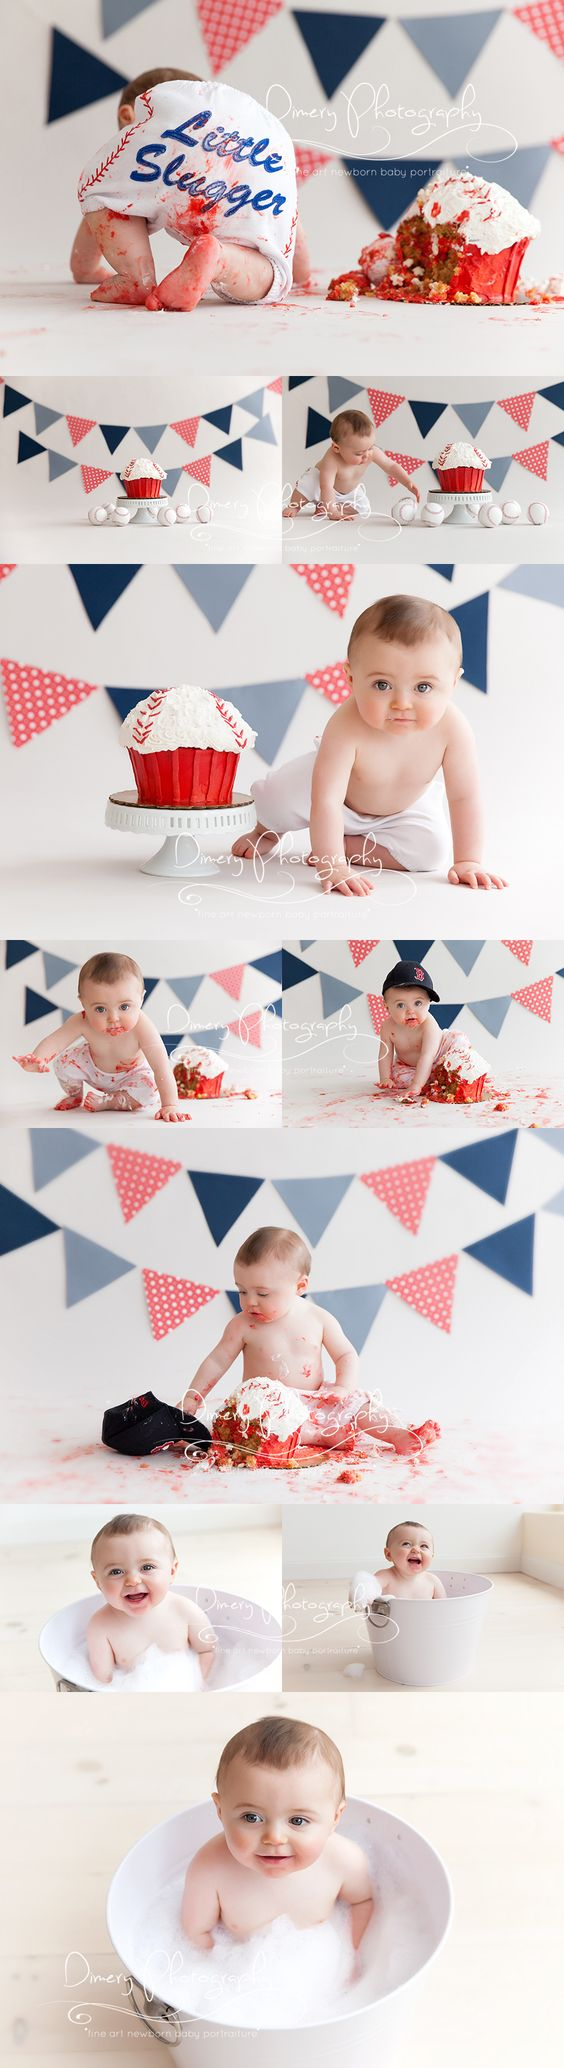 Six Month Old Baby Photo Shoot Ideas At Home Photo Ideas